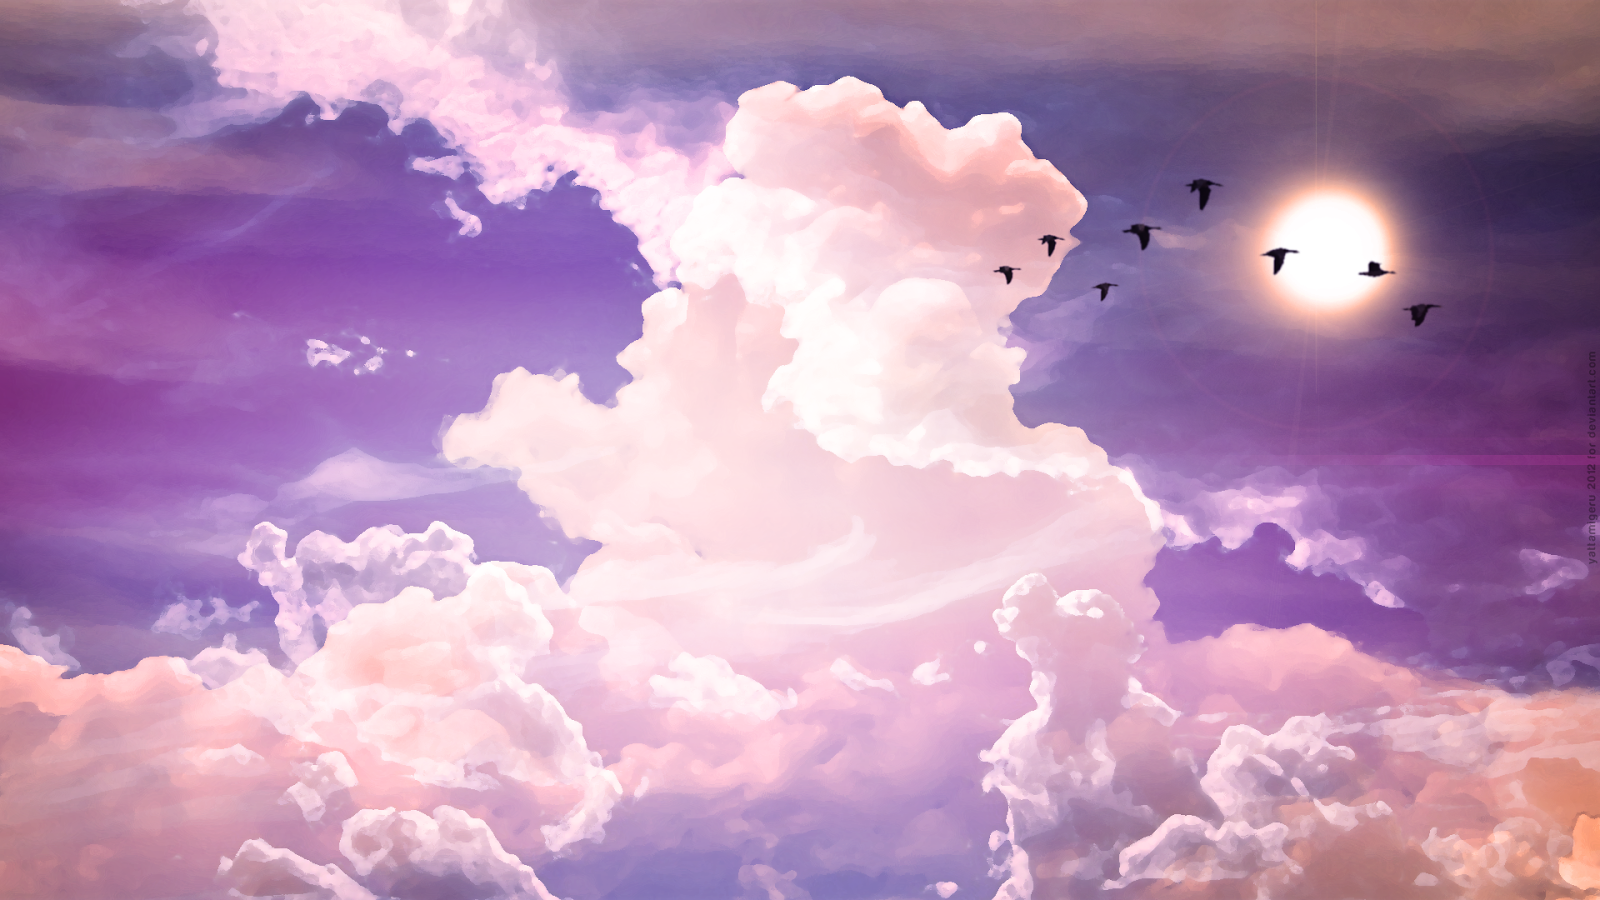 hd wallpapers for desktop sky cloud wallpapers hd 1600x900